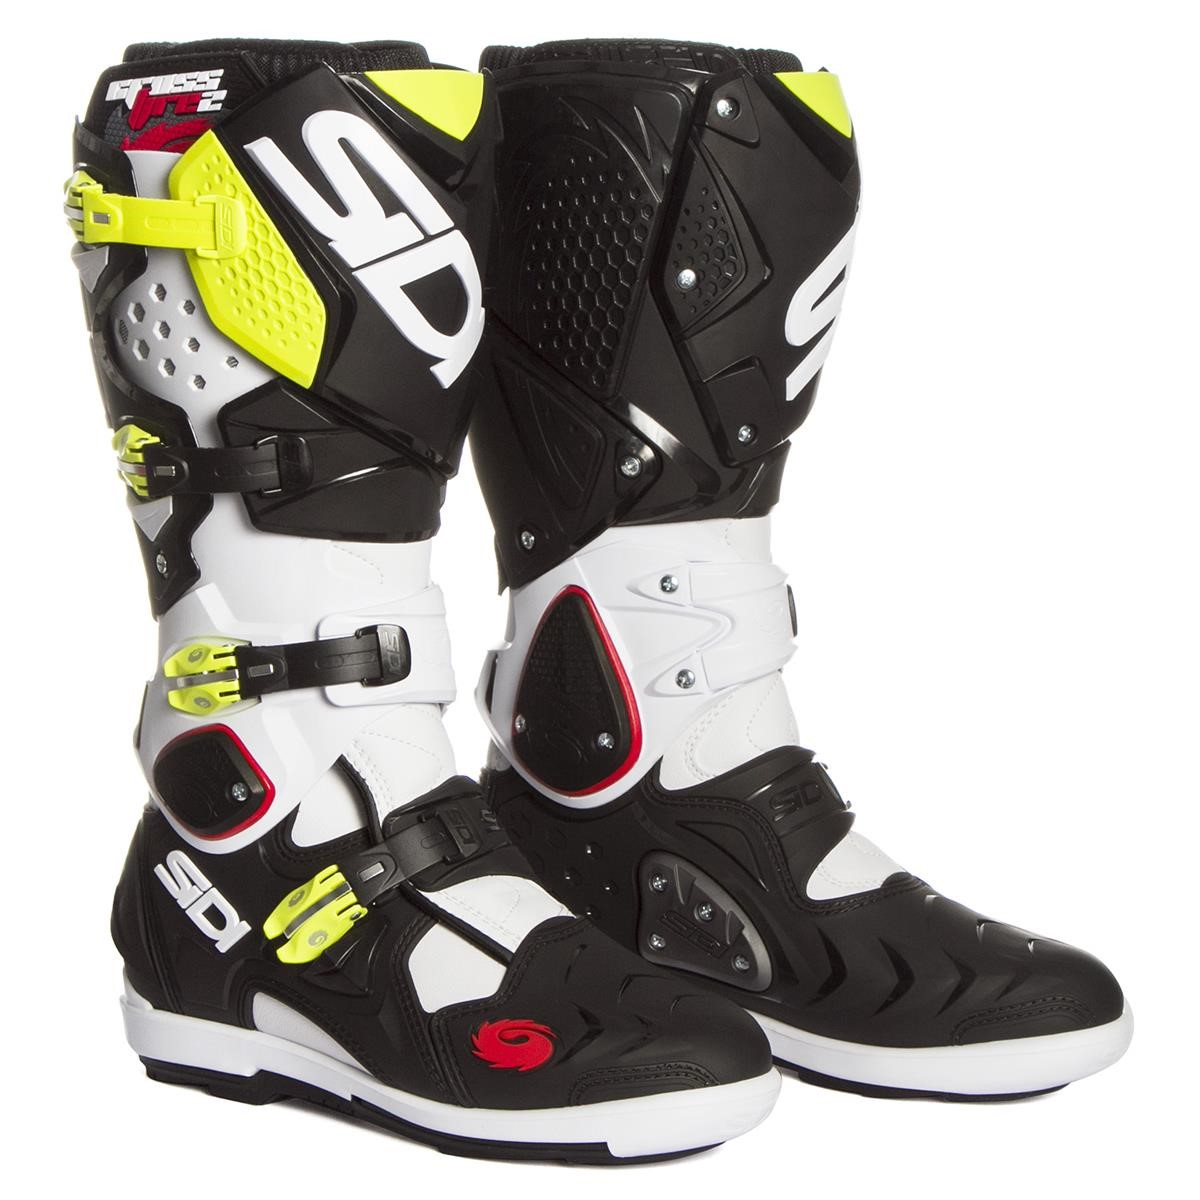 sidi mx boots crossfire 2 srs white black yellow fluo 2018 maciag offroad. Black Bedroom Furniture Sets. Home Design Ideas